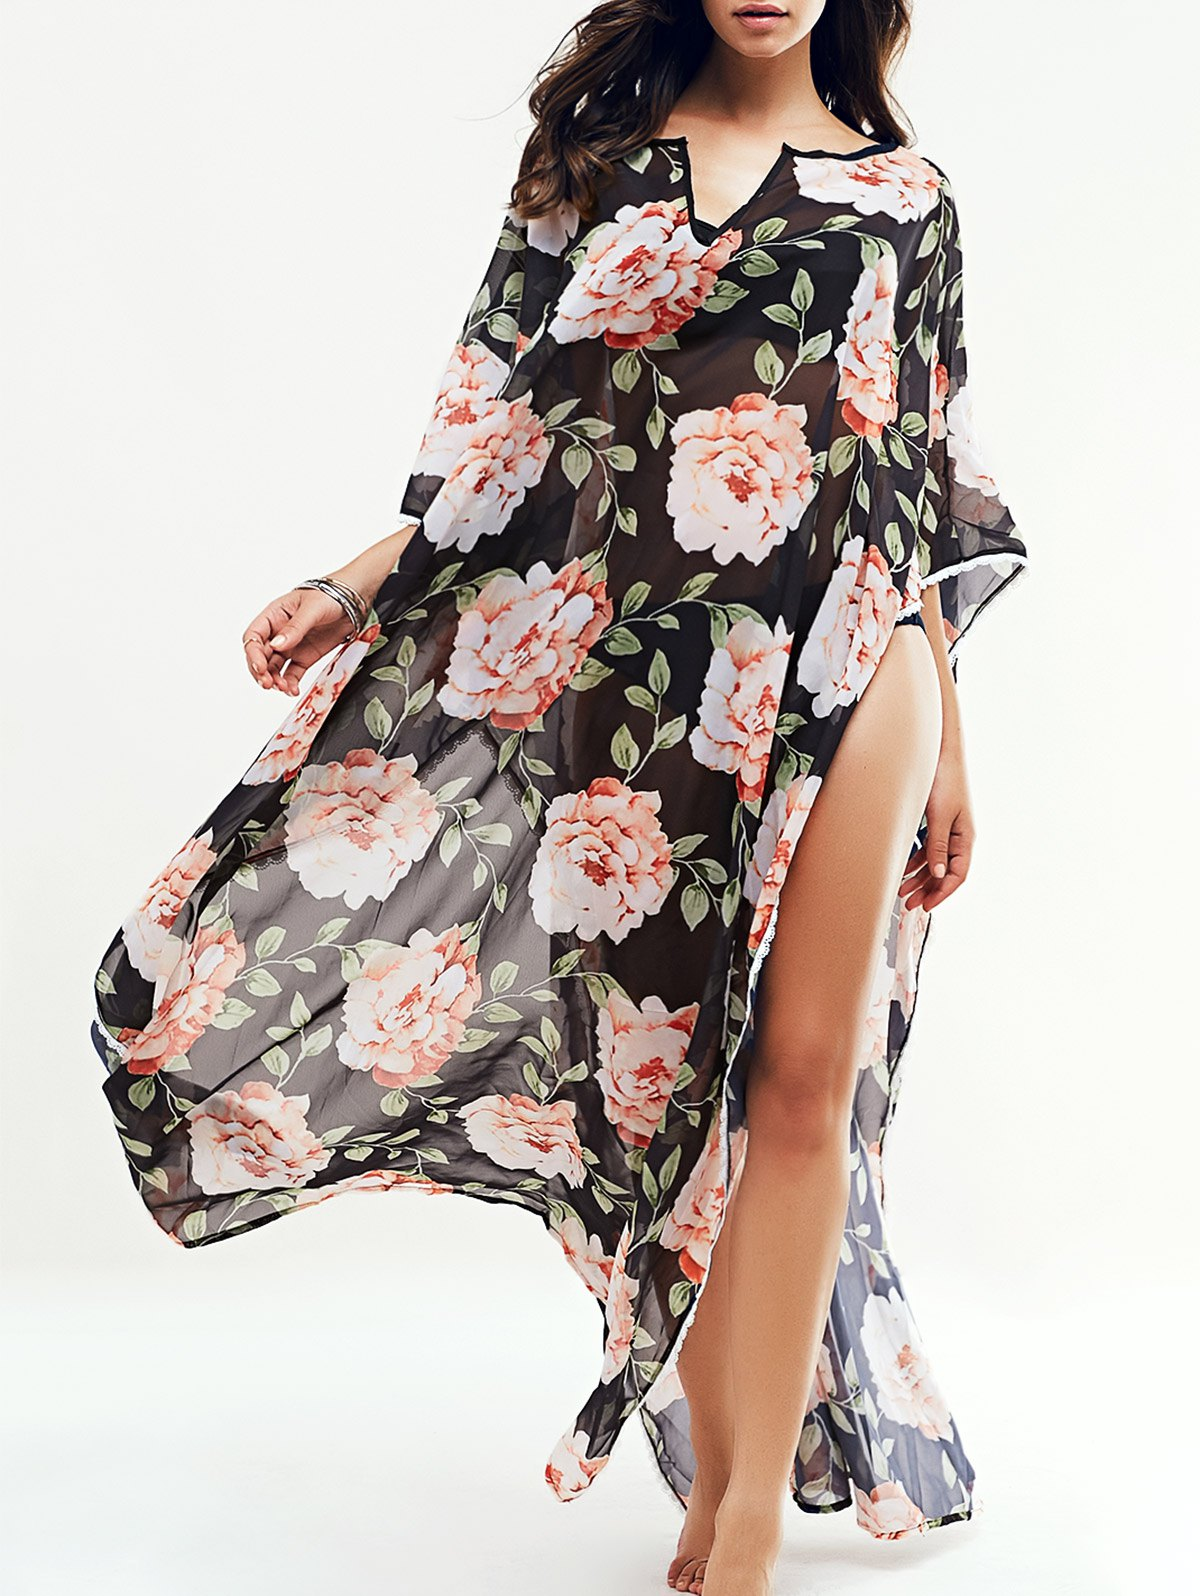 Large Floral Kaftan Cover-Up